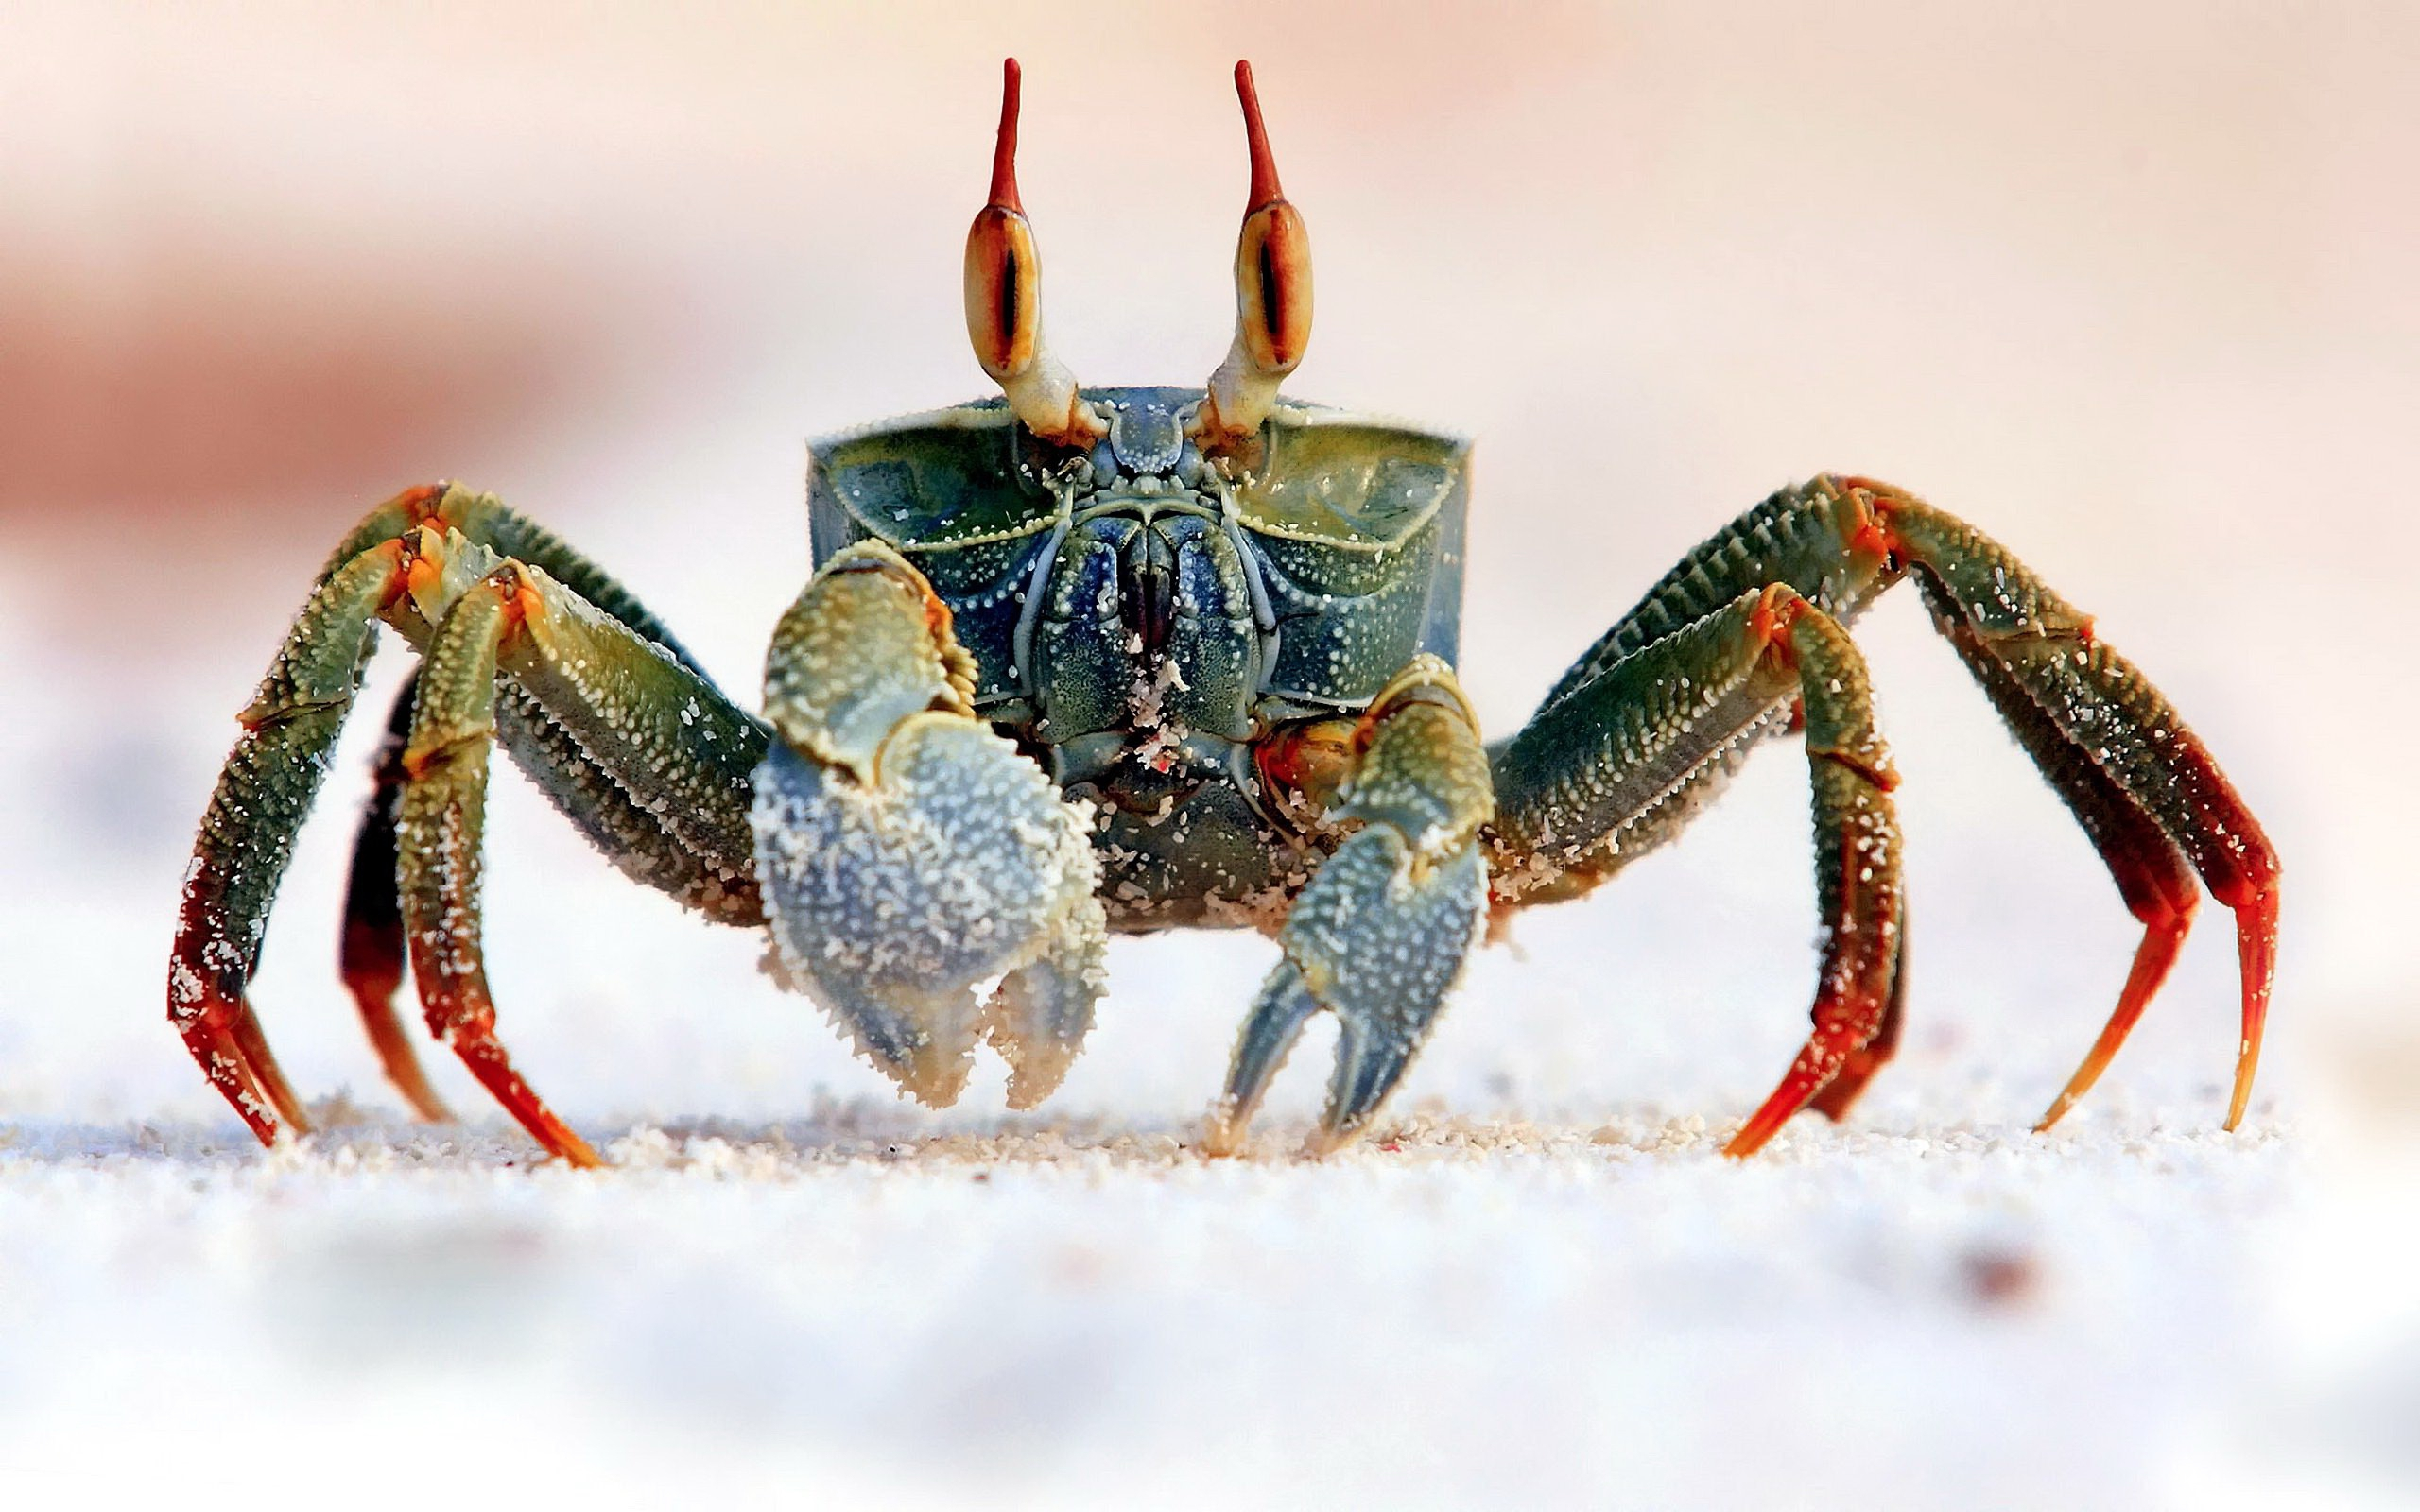 Crab Computer Wallpaper